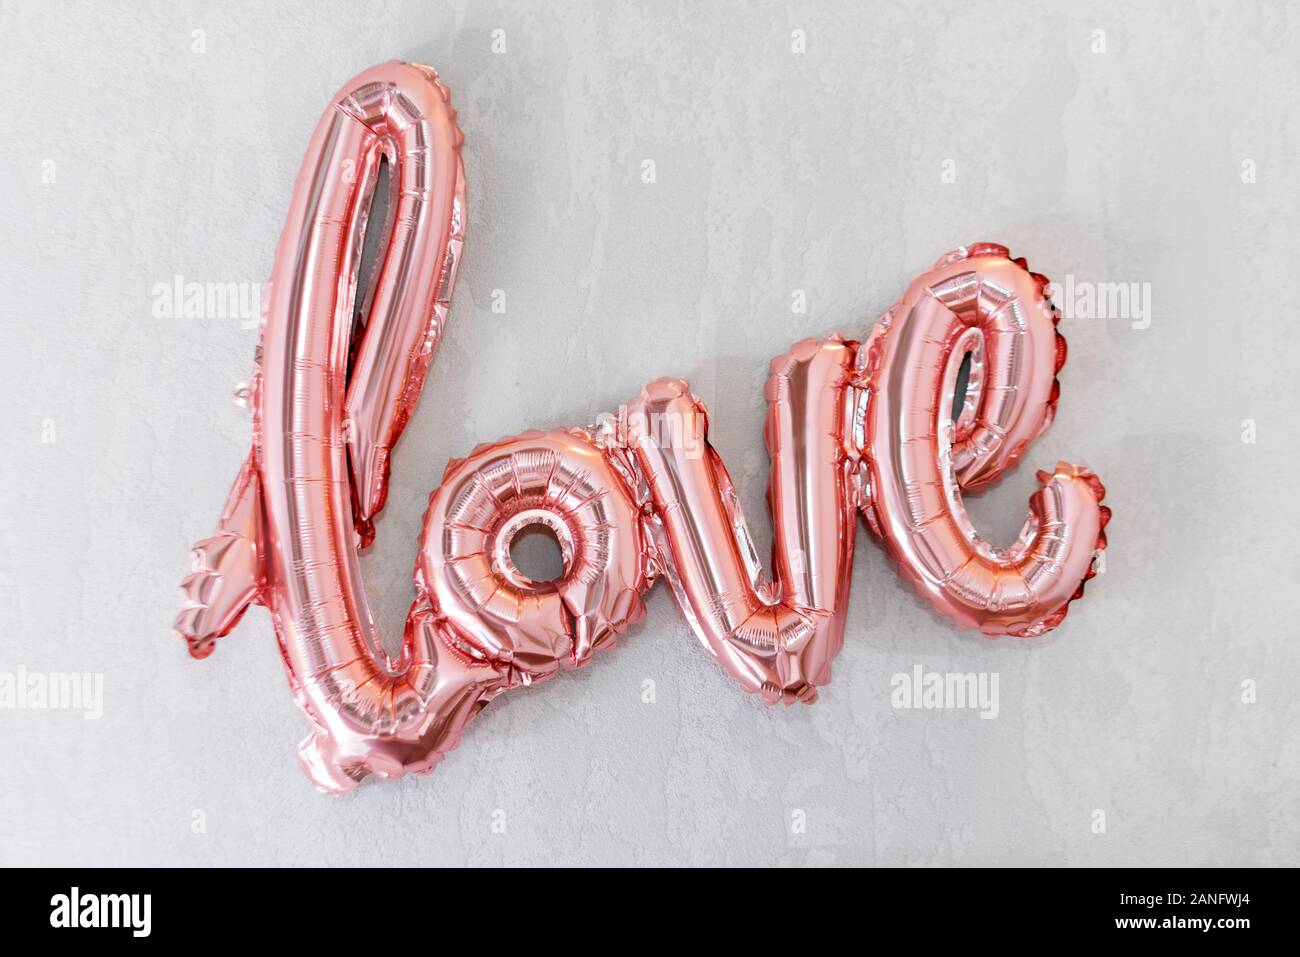 love word from pink inflatable balloon on grey concrete background the concept of romance valentines day love rose gold foil balloon 2ANFWJ4